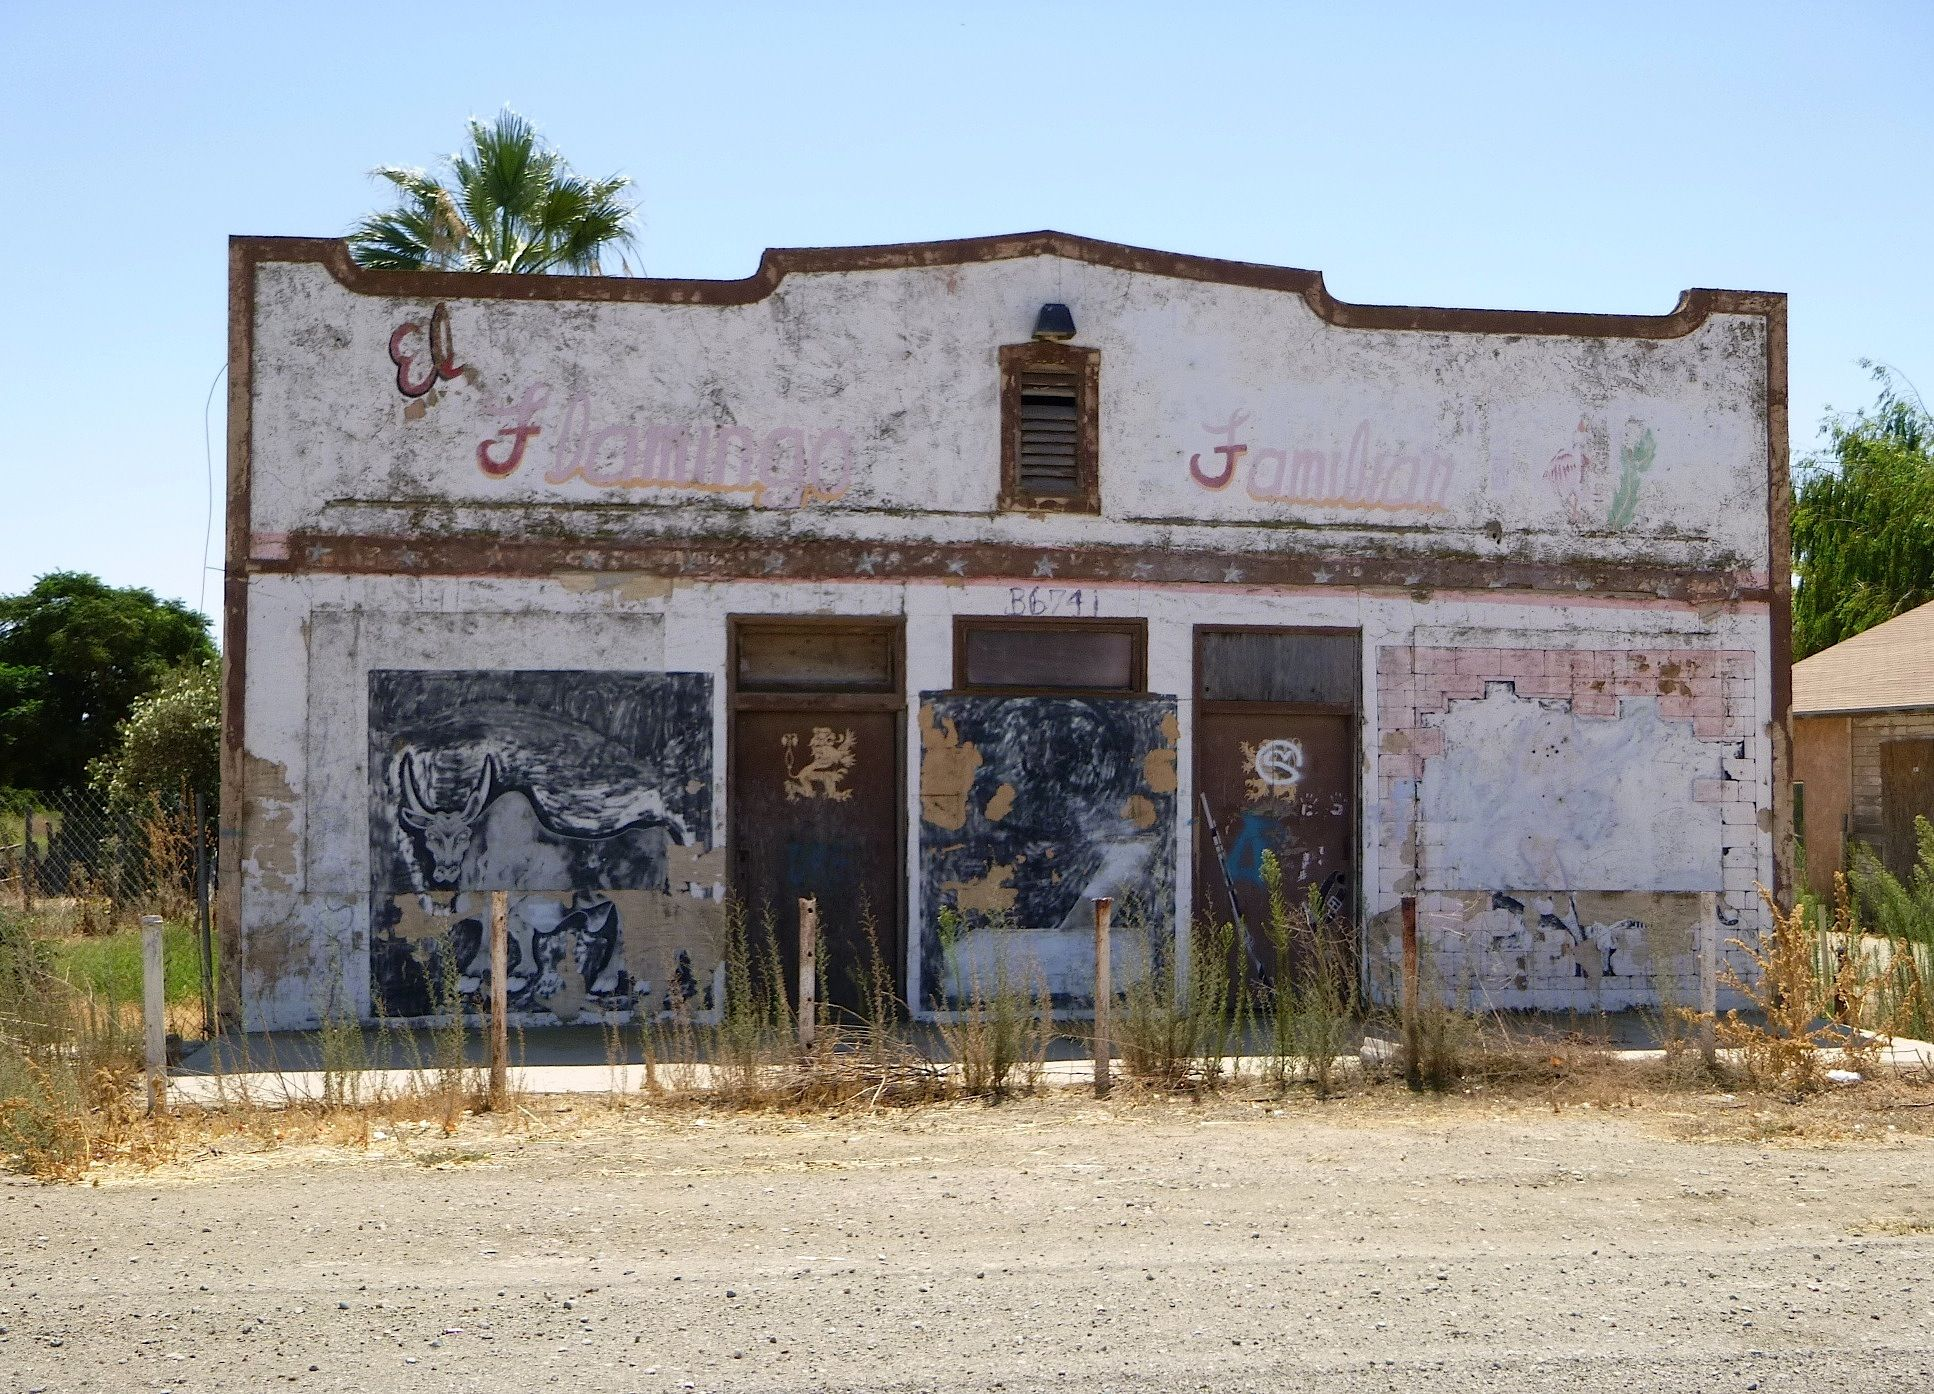 Abandoned store near the rail stop of benito fresno